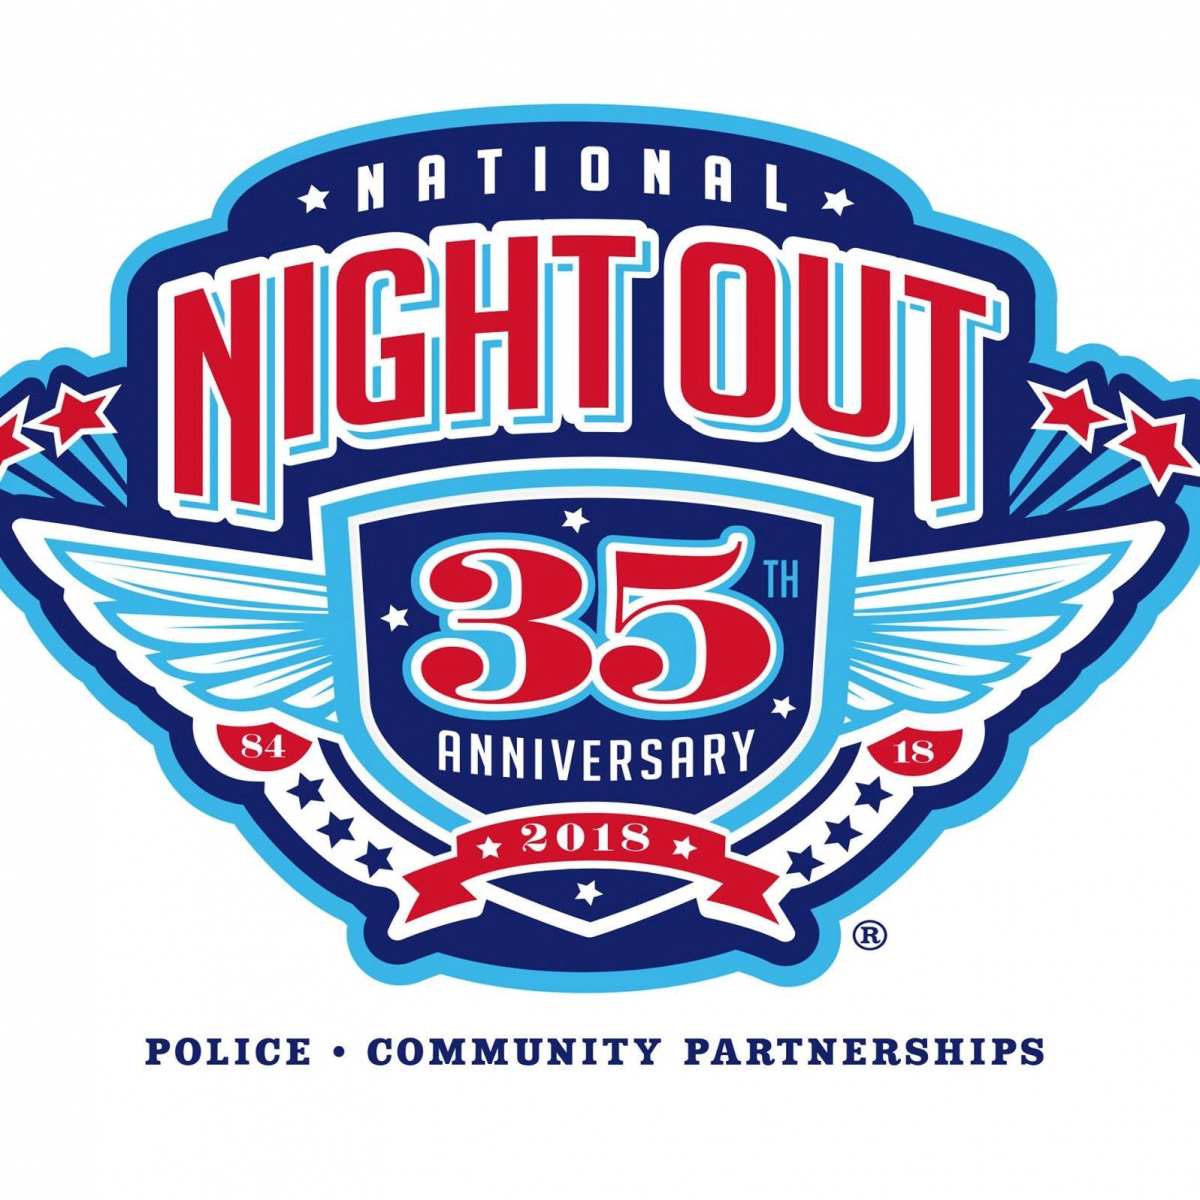 Exeter Police Dept. holds event on Aug. 7 as part of National Night Out